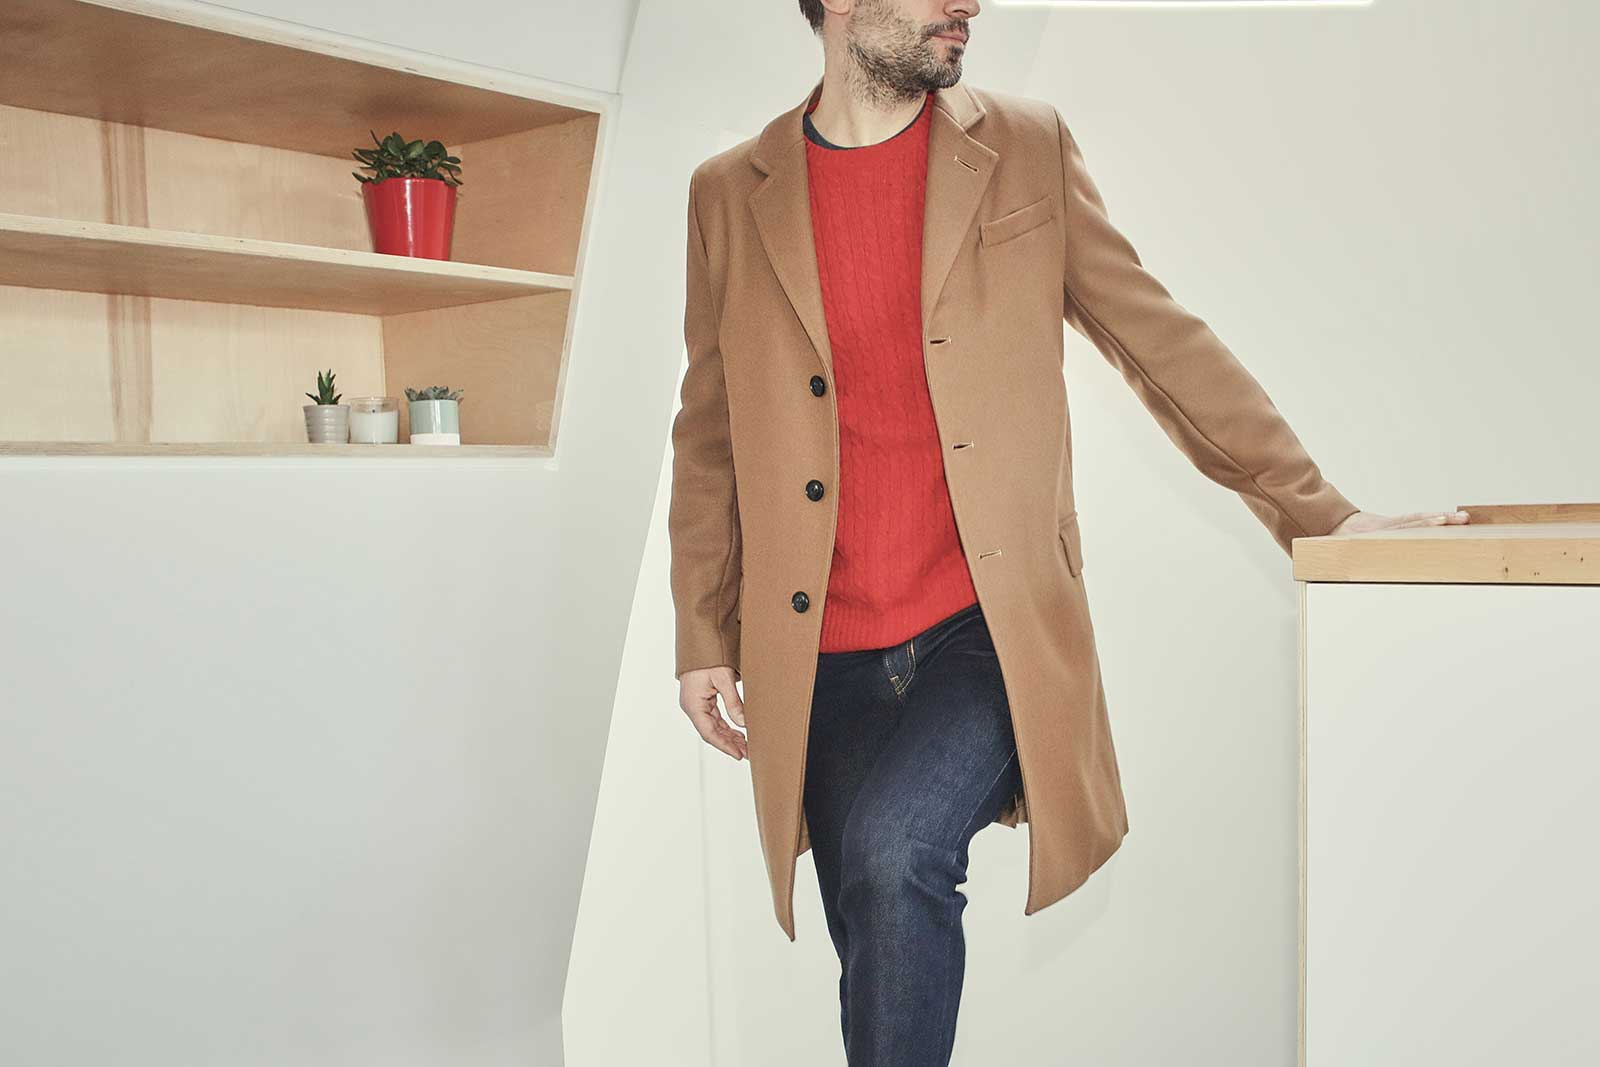 Overcoat for the pub